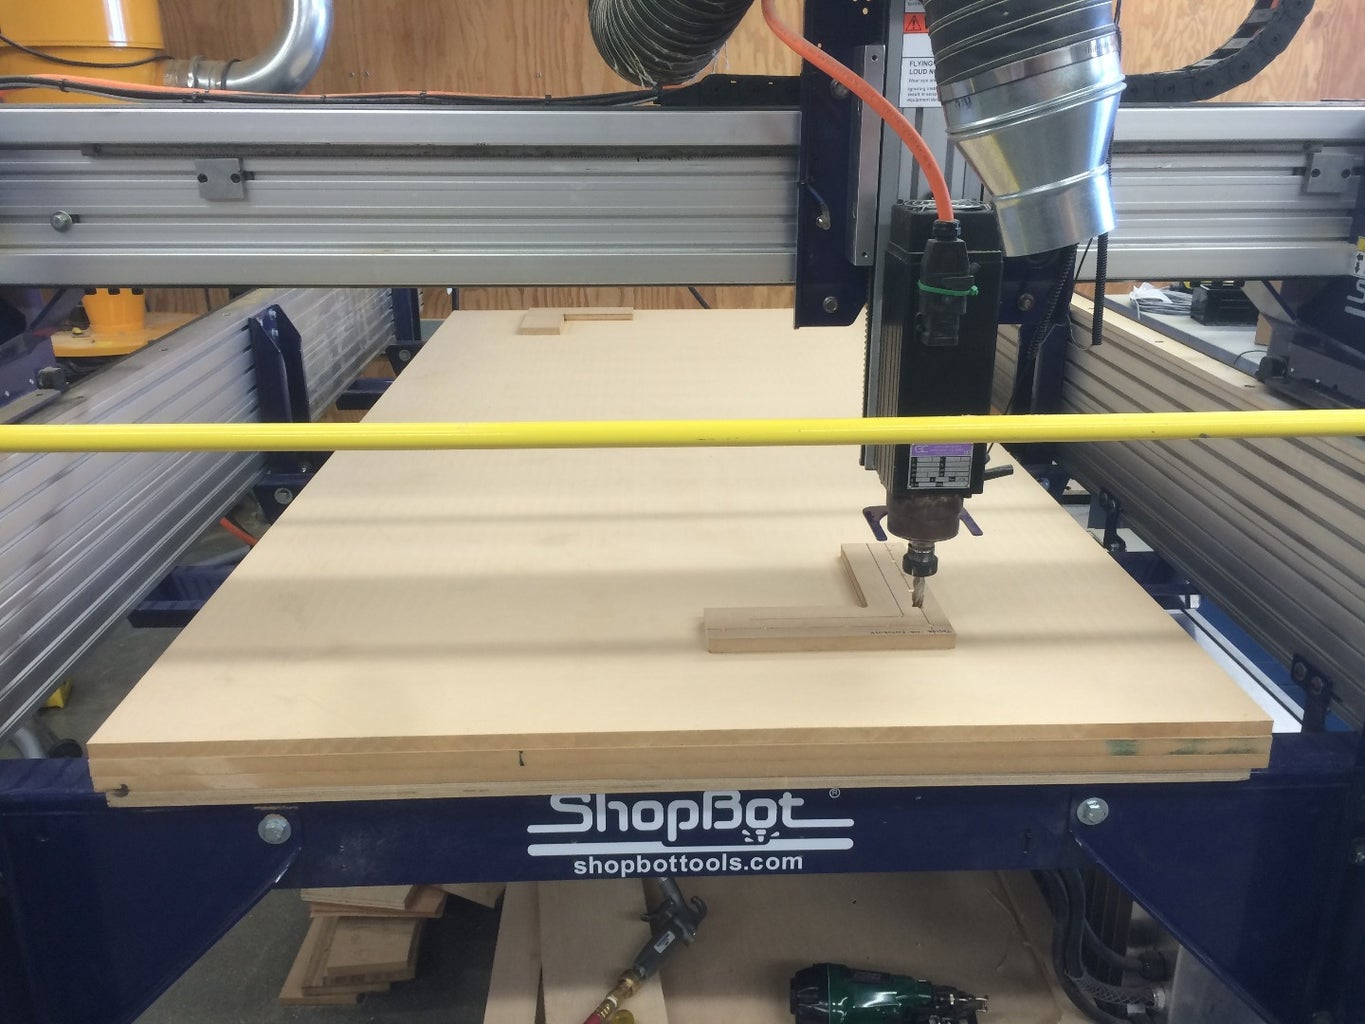 Fixture + Align Your Material to the CNC Shopbot